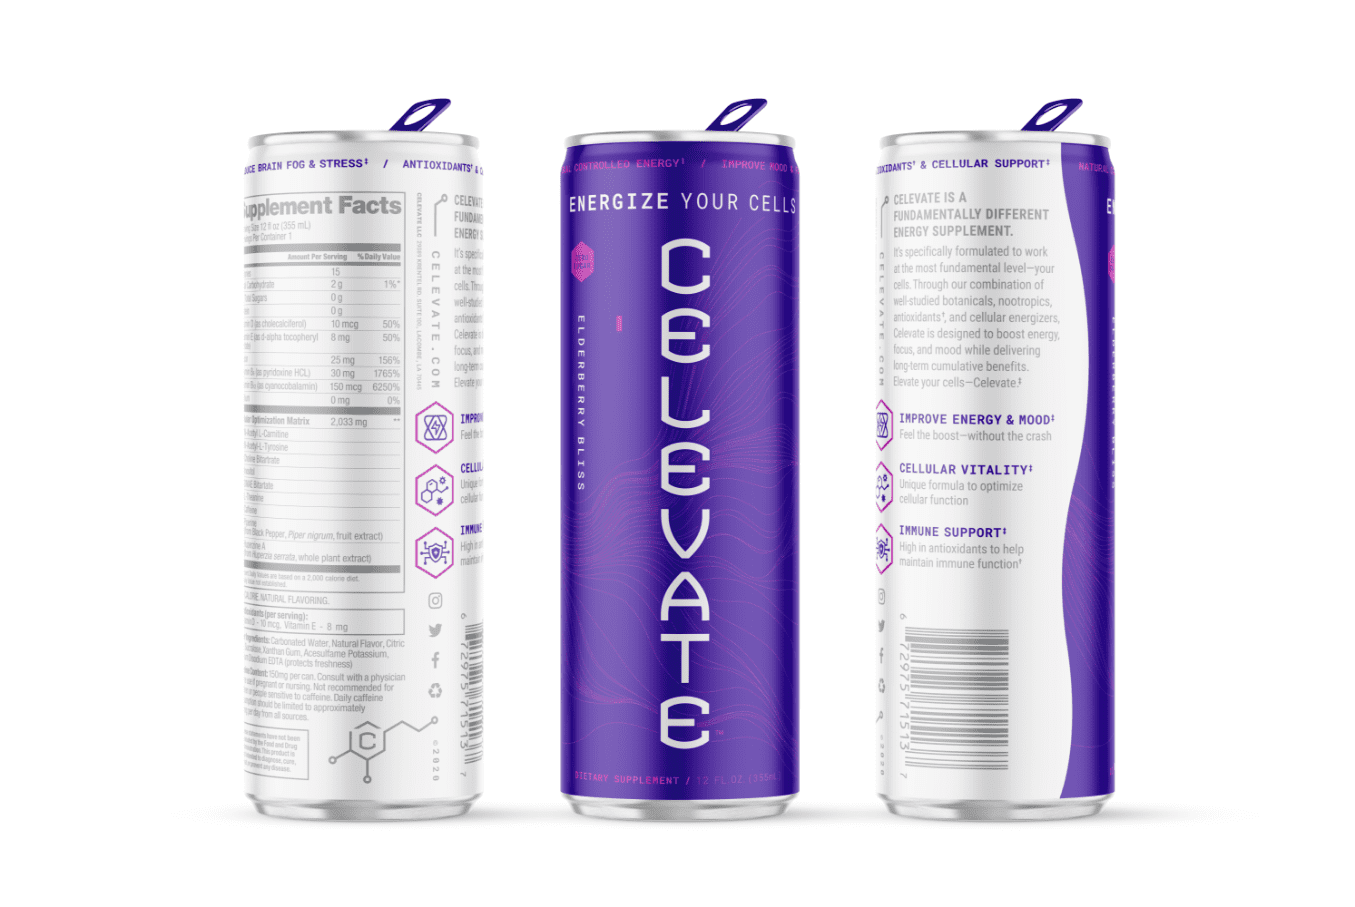 purple can render of elderberry bliss flavor celevate